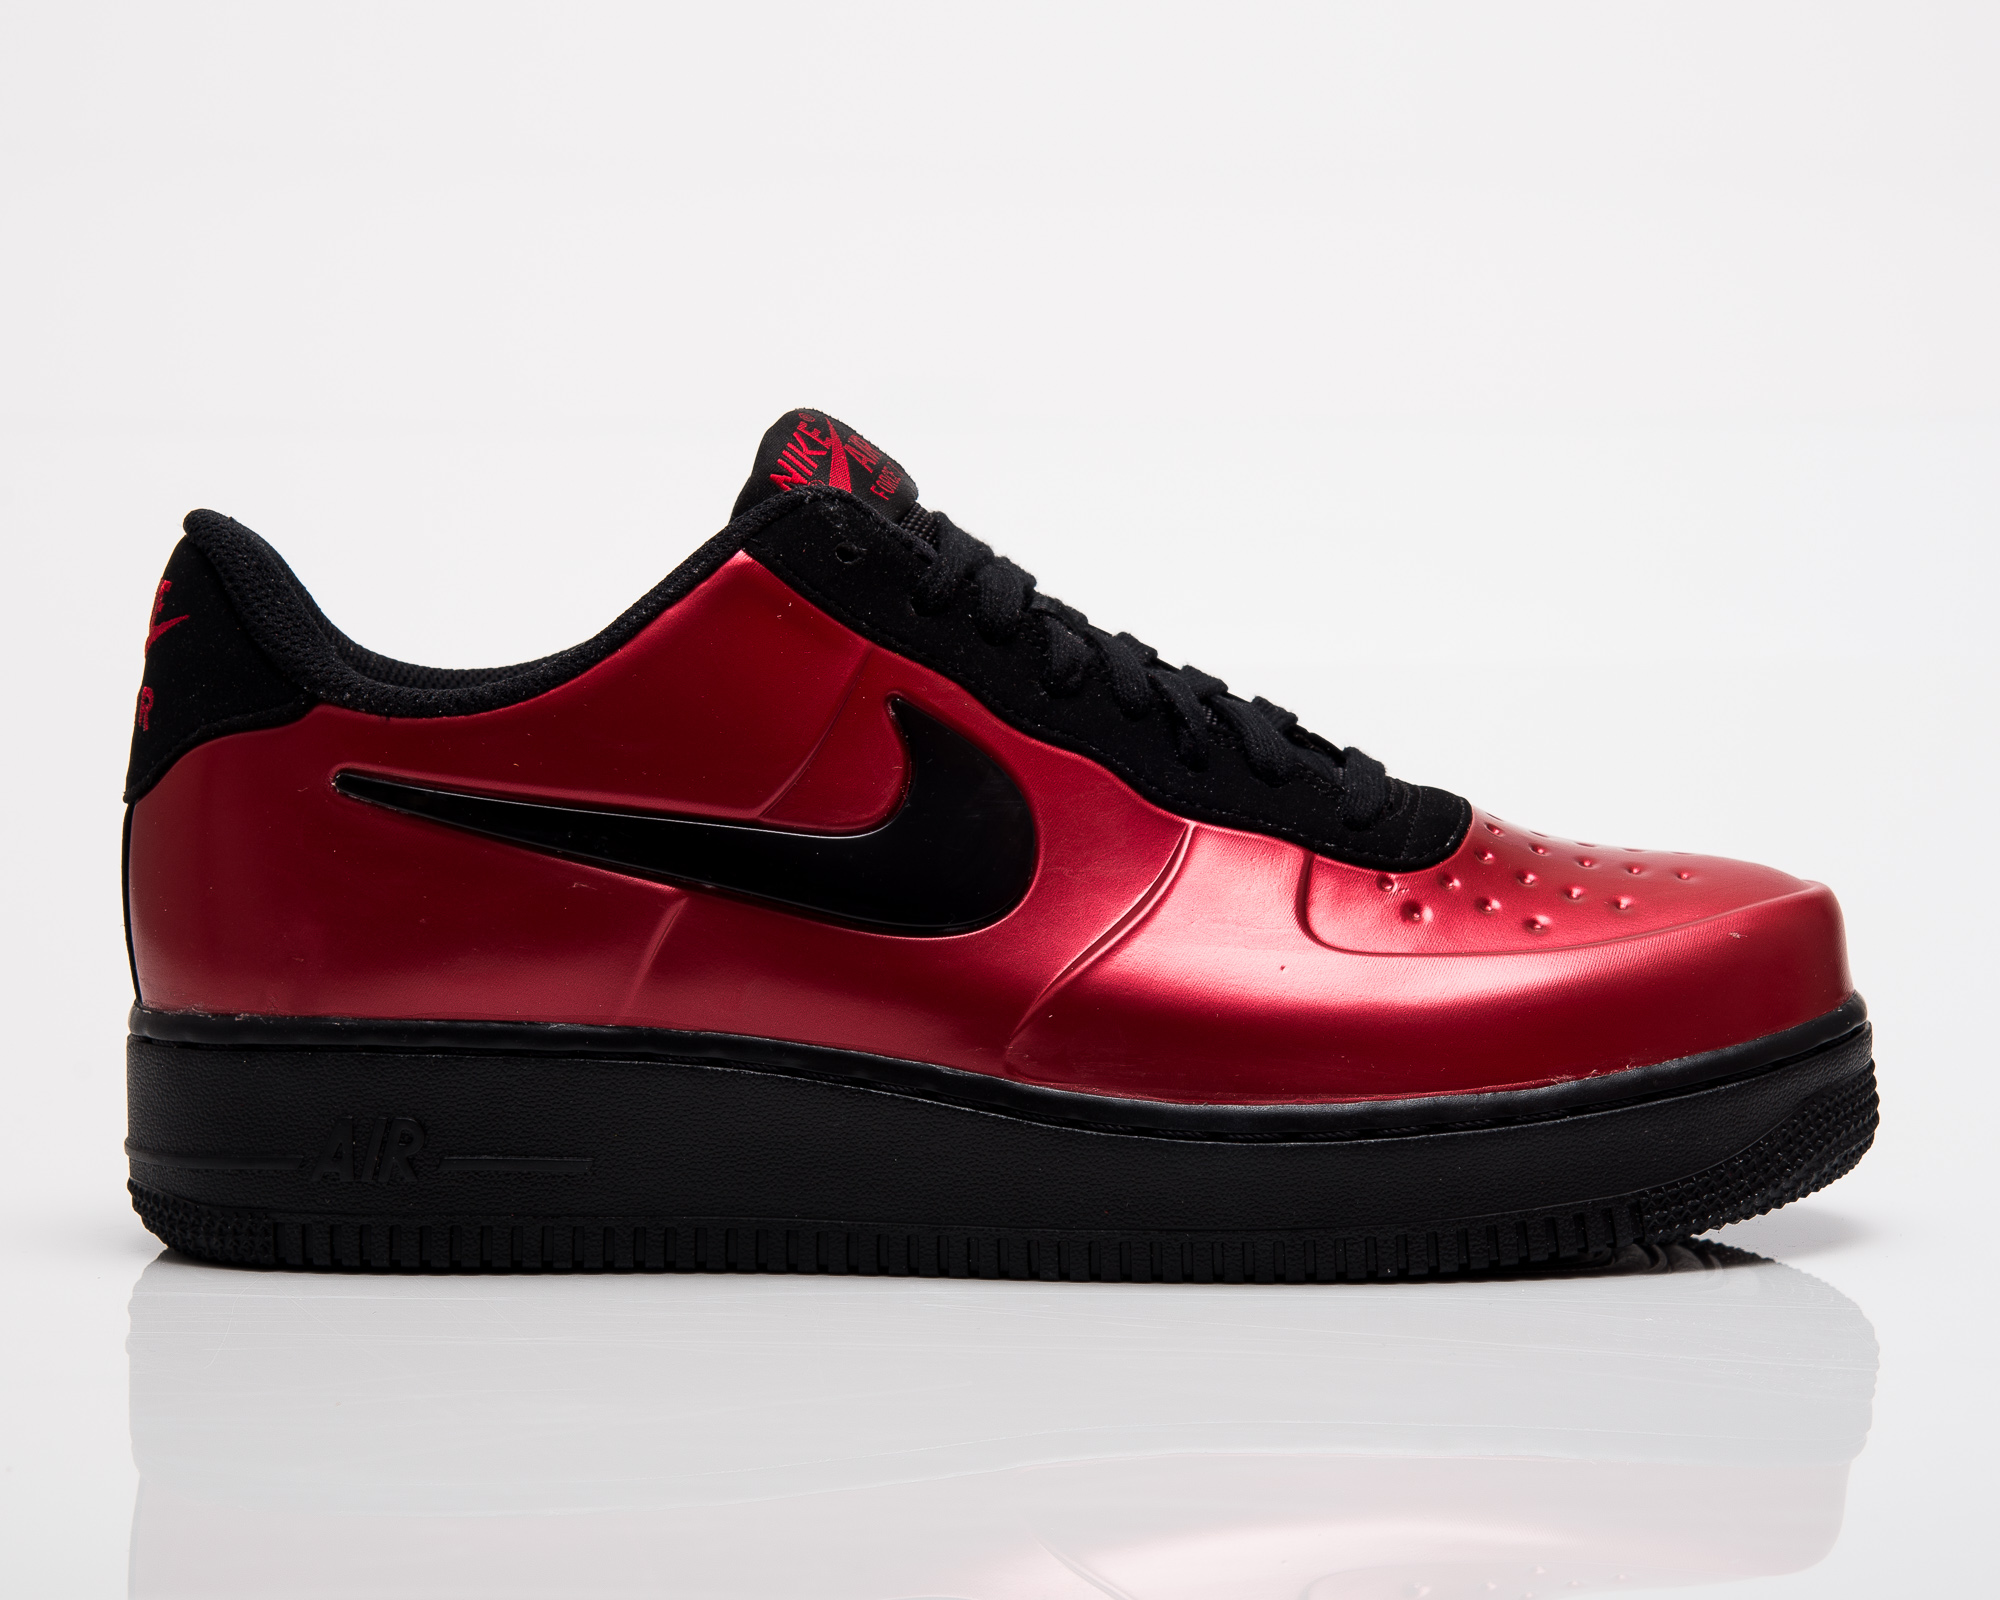 e142a0e8e99 Nike Air Force 1 Foamposite Pro Cup - Shoes Casual - Sporting goods ...